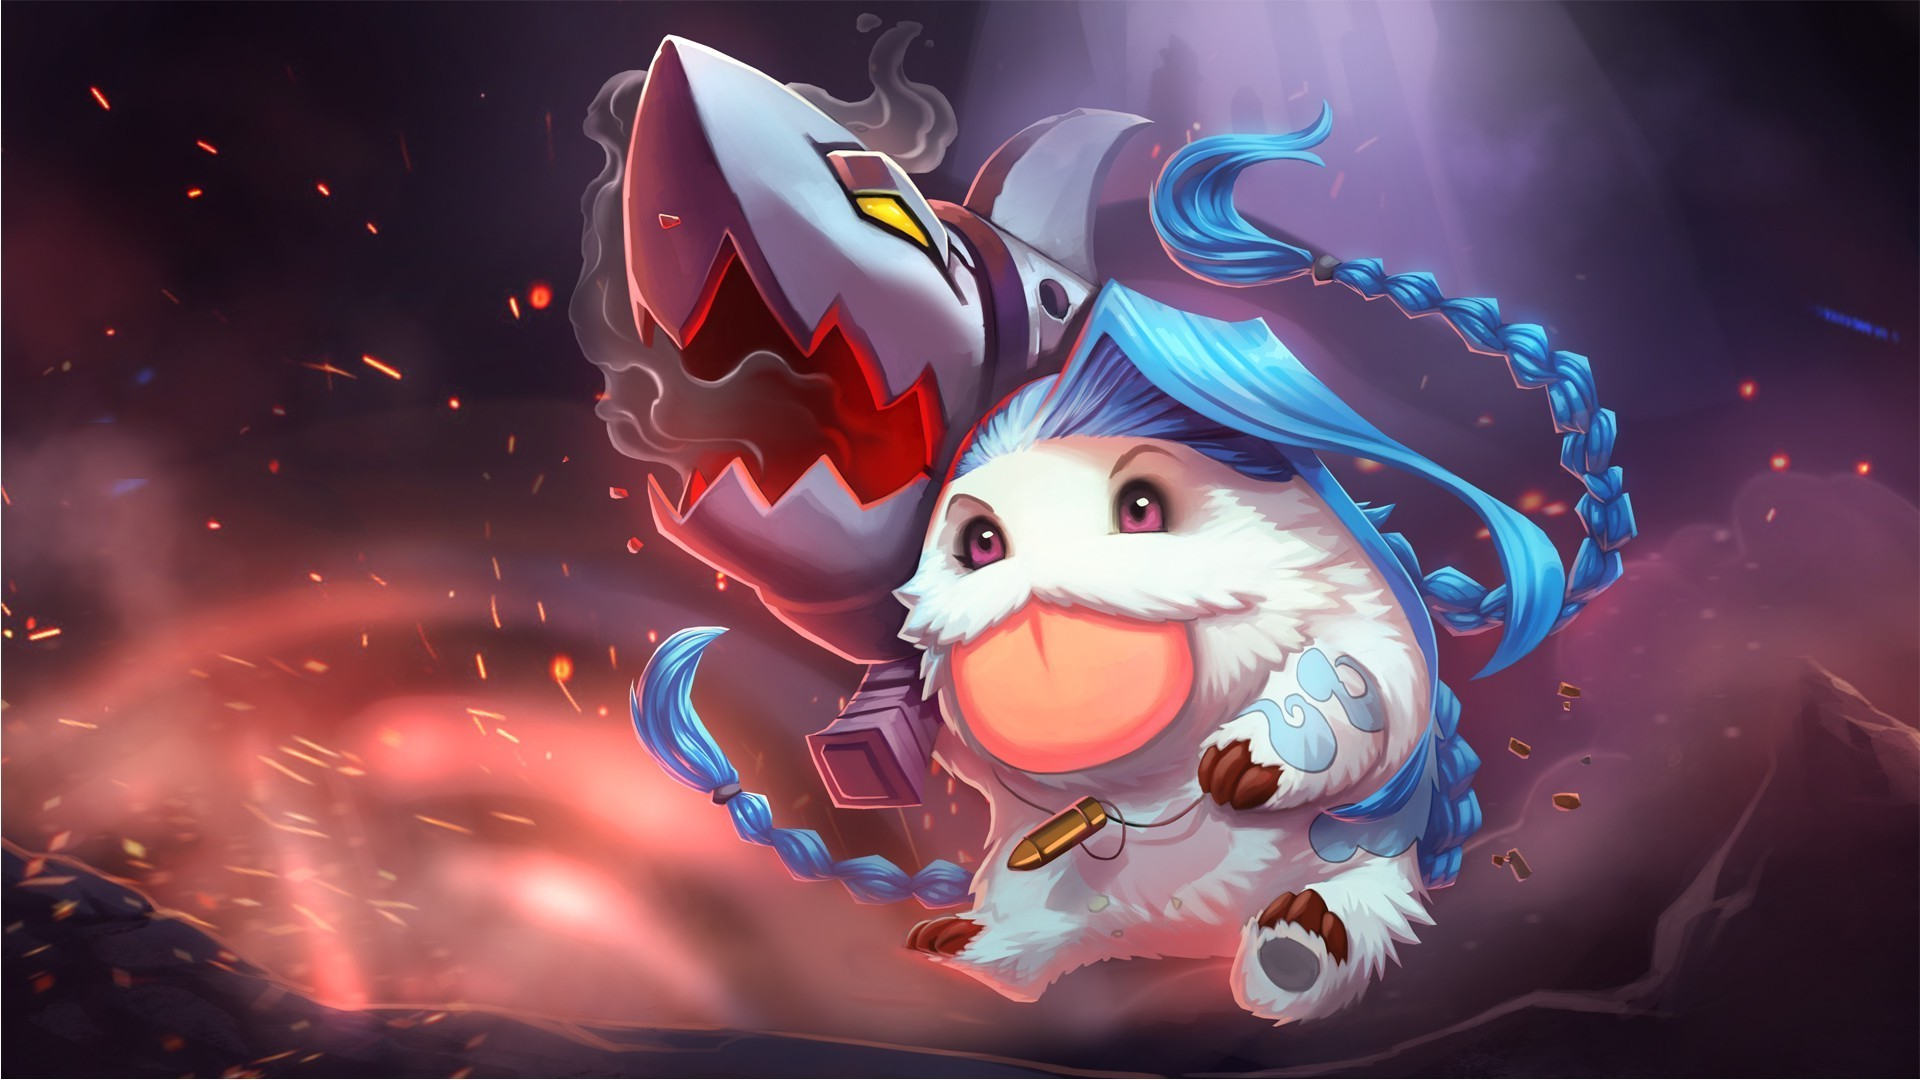 1920x1080 League Of Legends, Poro, Jinx Wallpapers HD / Desktop and Mobile Backgrounds